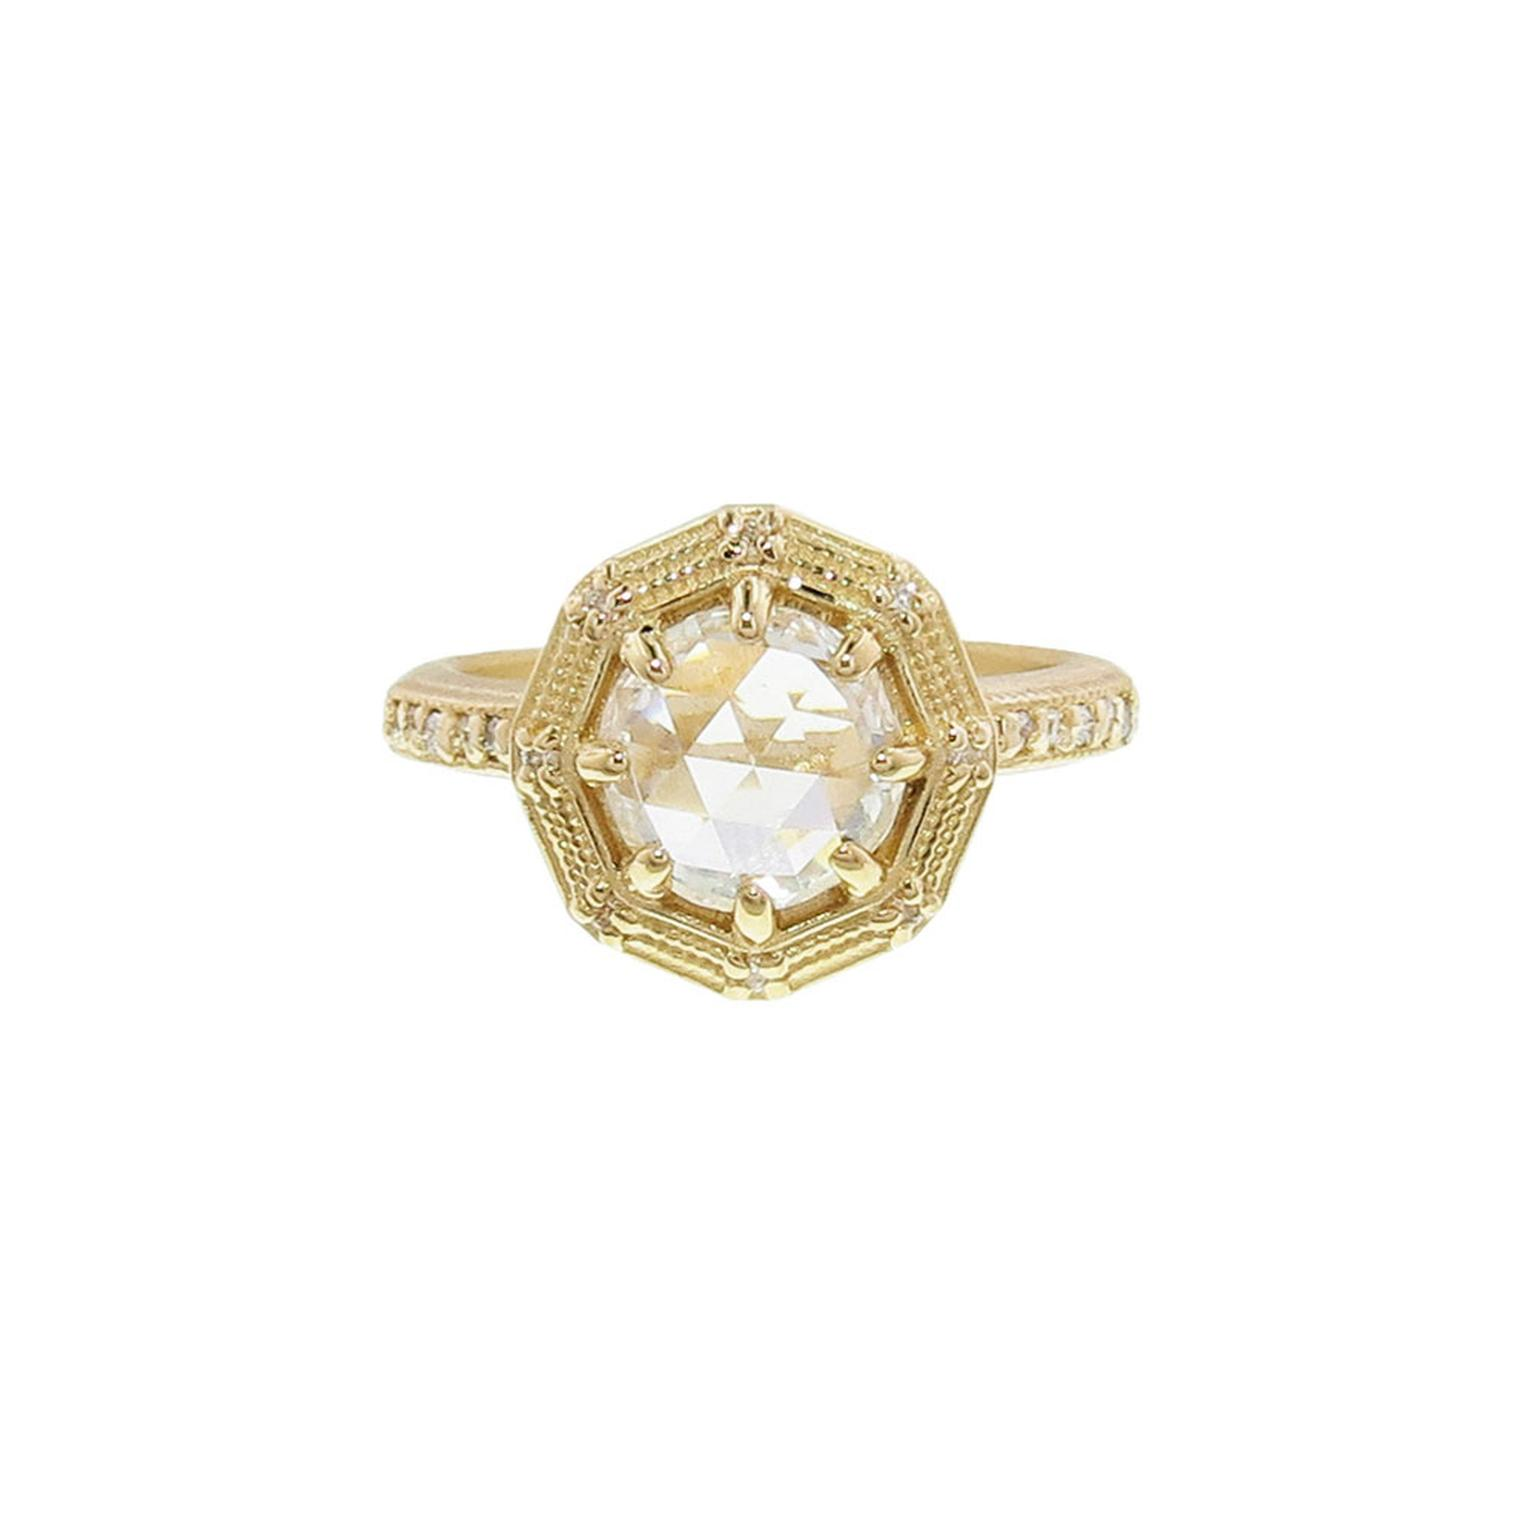 Megan Thorne bezel-cut diamond ring